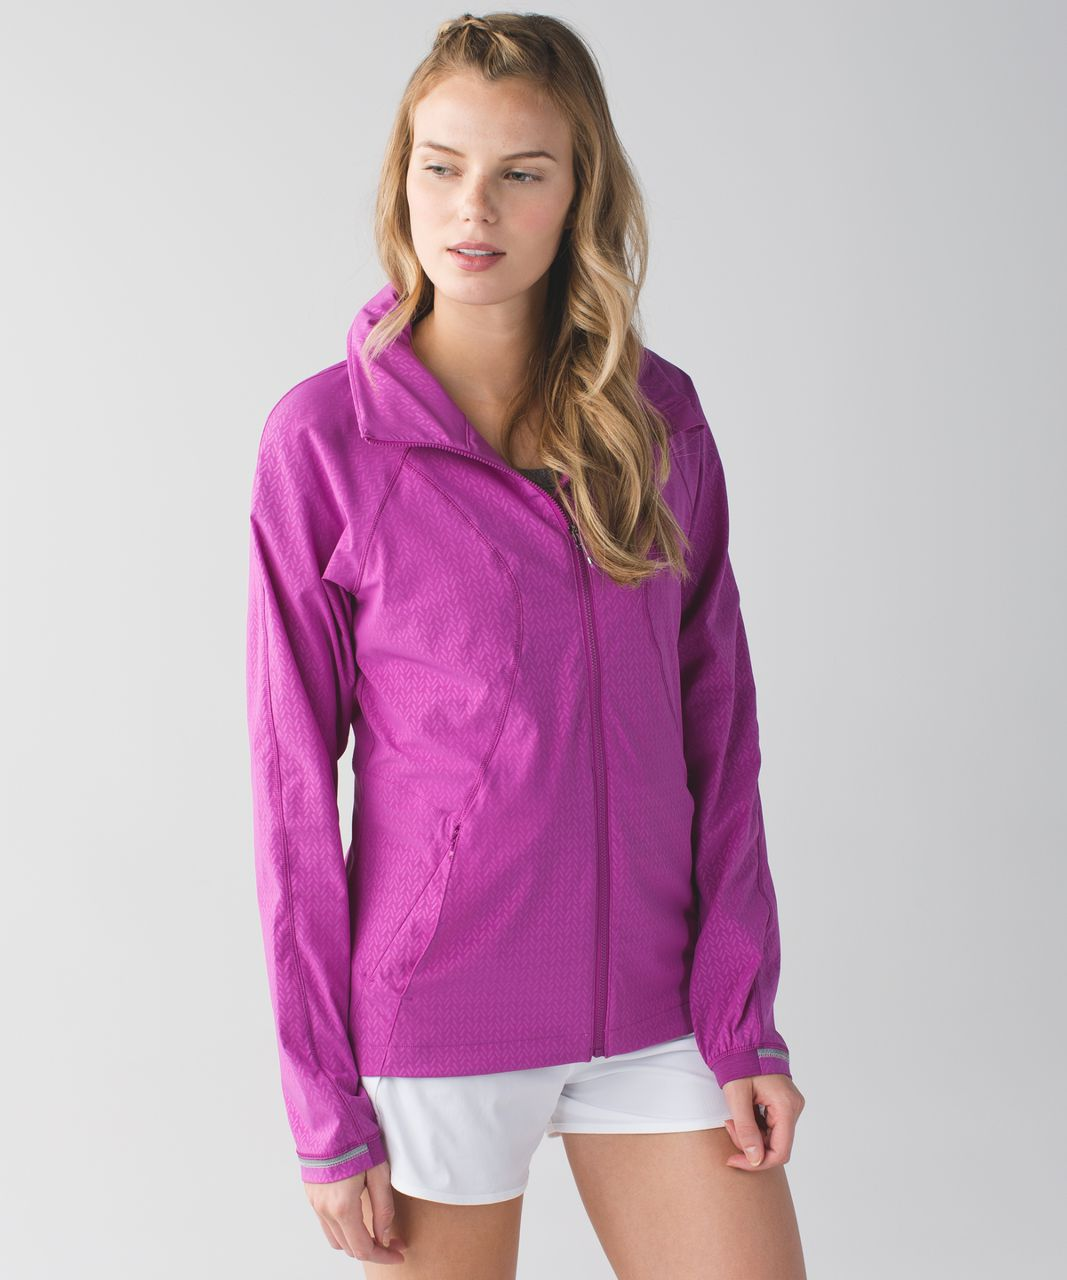 Lululemon Go The Distance Jacket - Biggie Washi Weave Embossed Ultra Violet